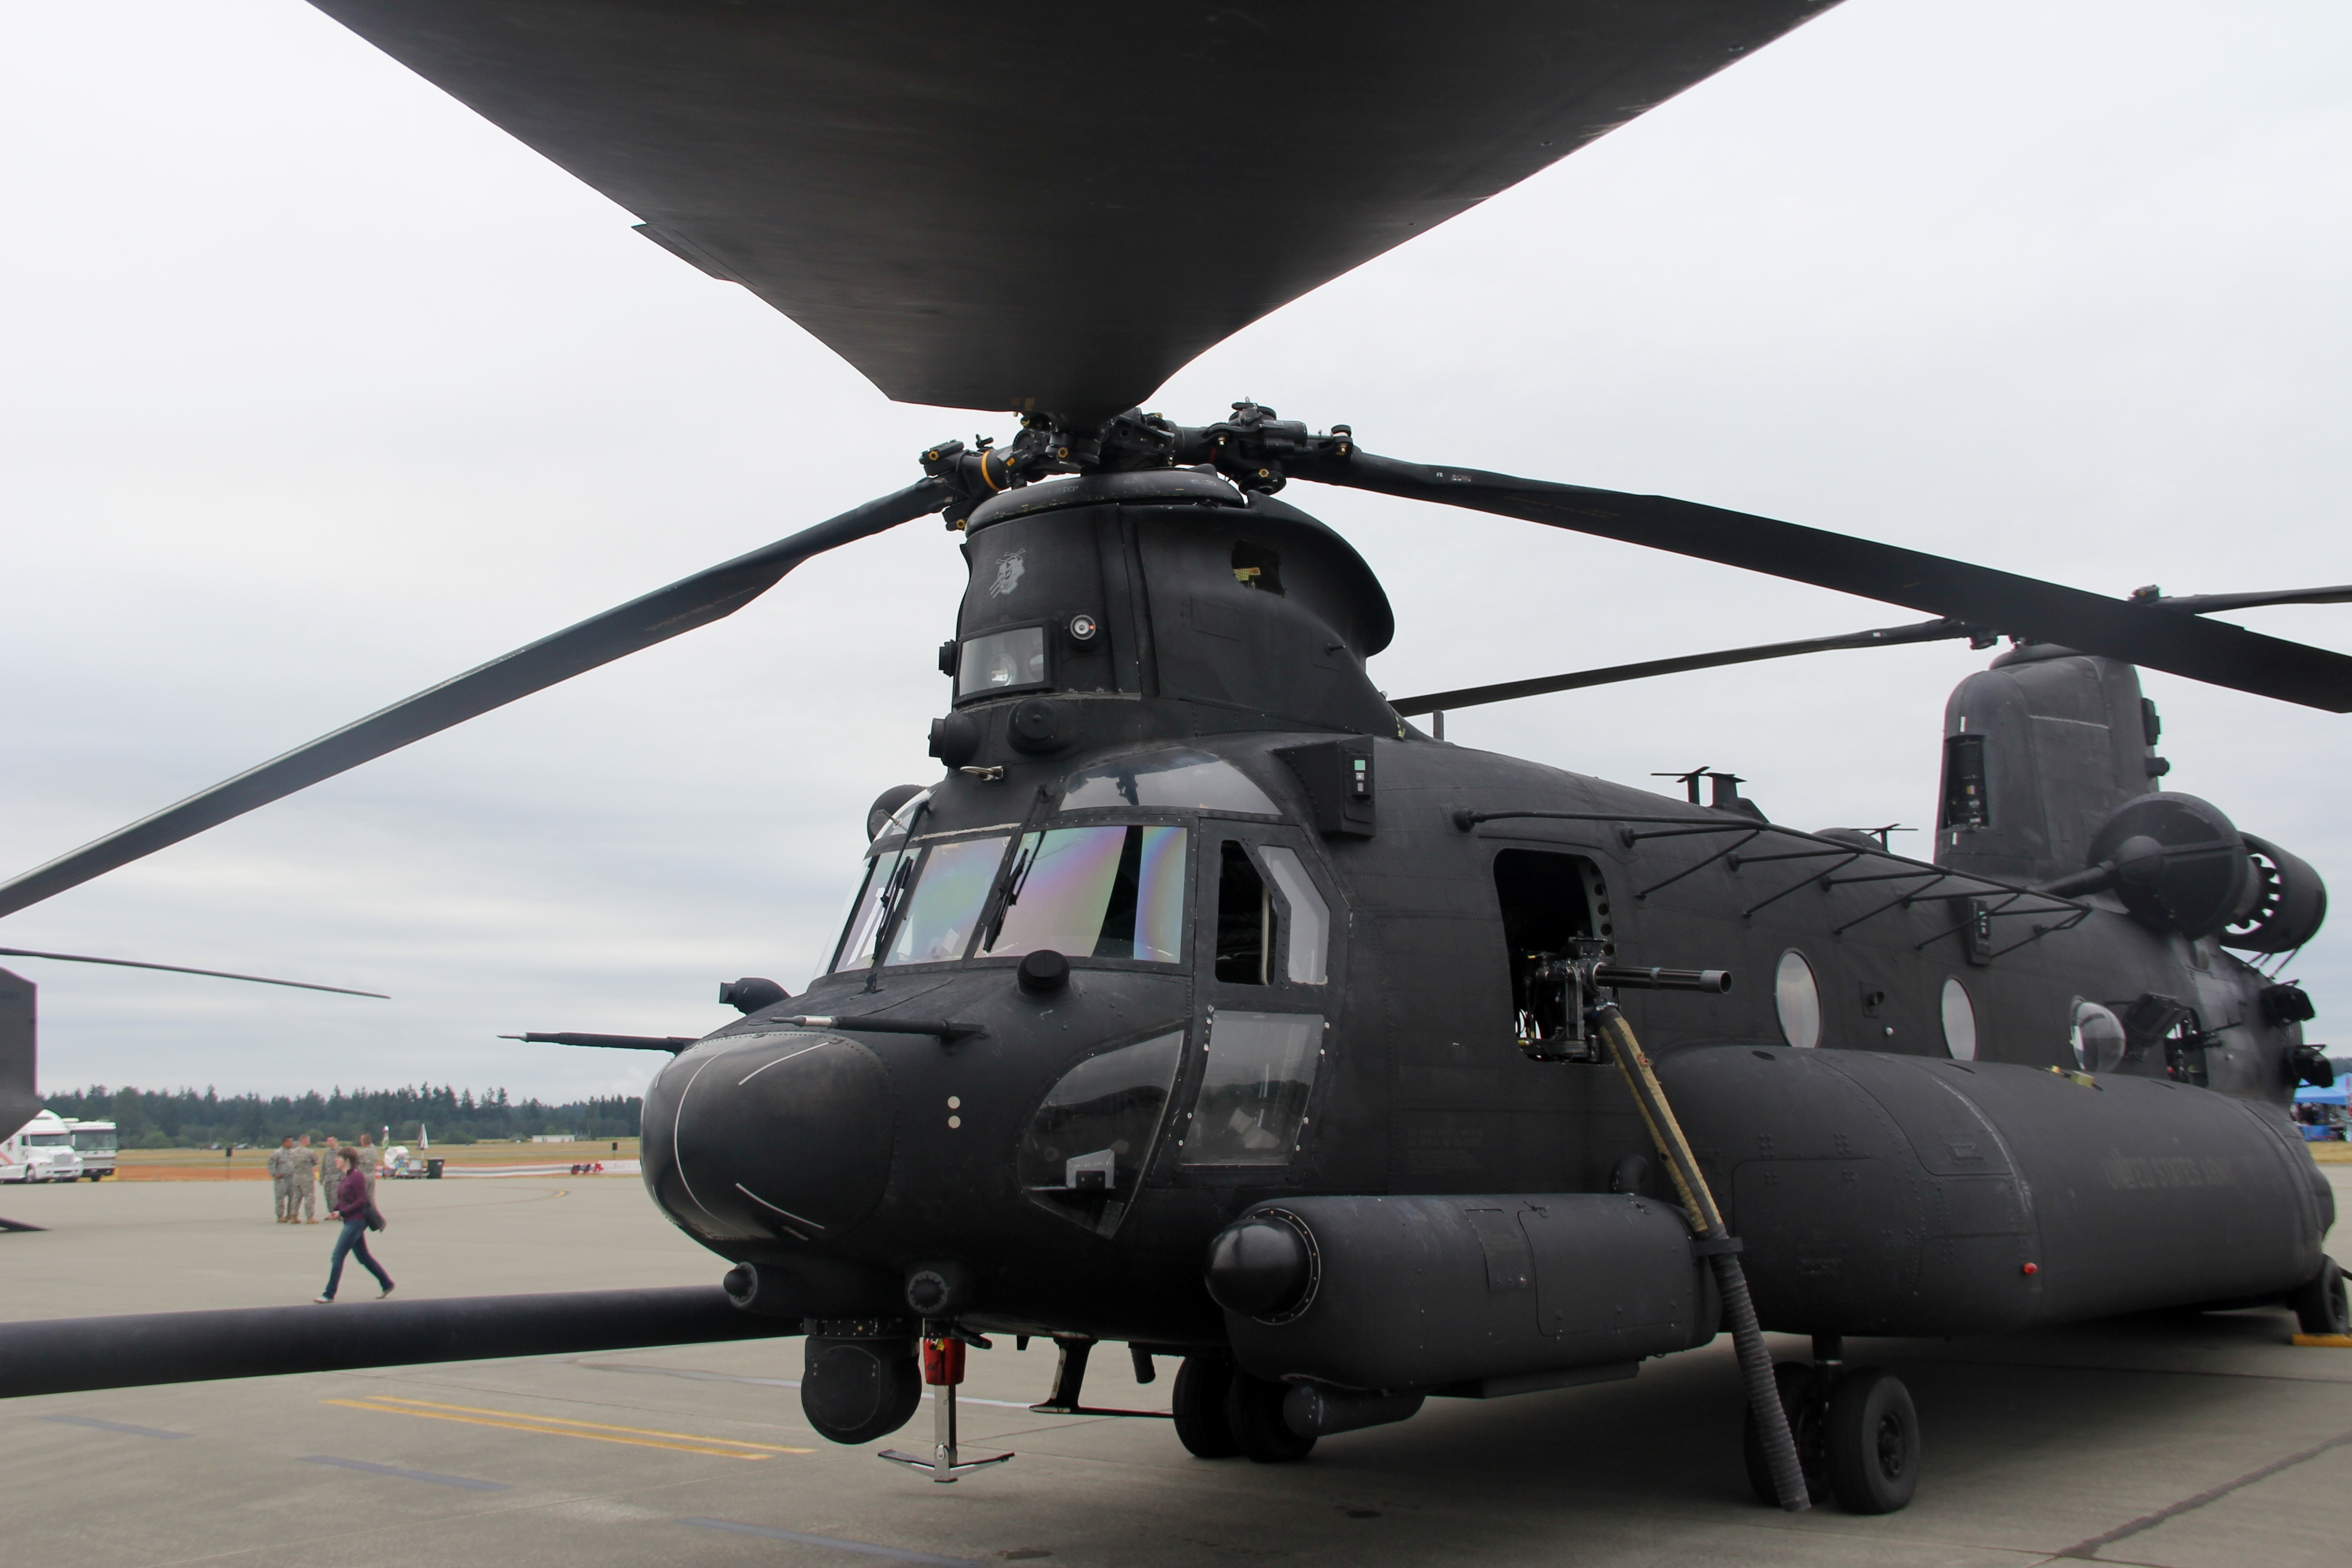 chinook helicopter use with File Boeing Mh 47g Heavy Assault Helicopter  7626804614 on 50018 as well Page likewise Clients as well 105mm Gun Towed By Hagglund Bv206 likewise Fliegender Hubschrauber.